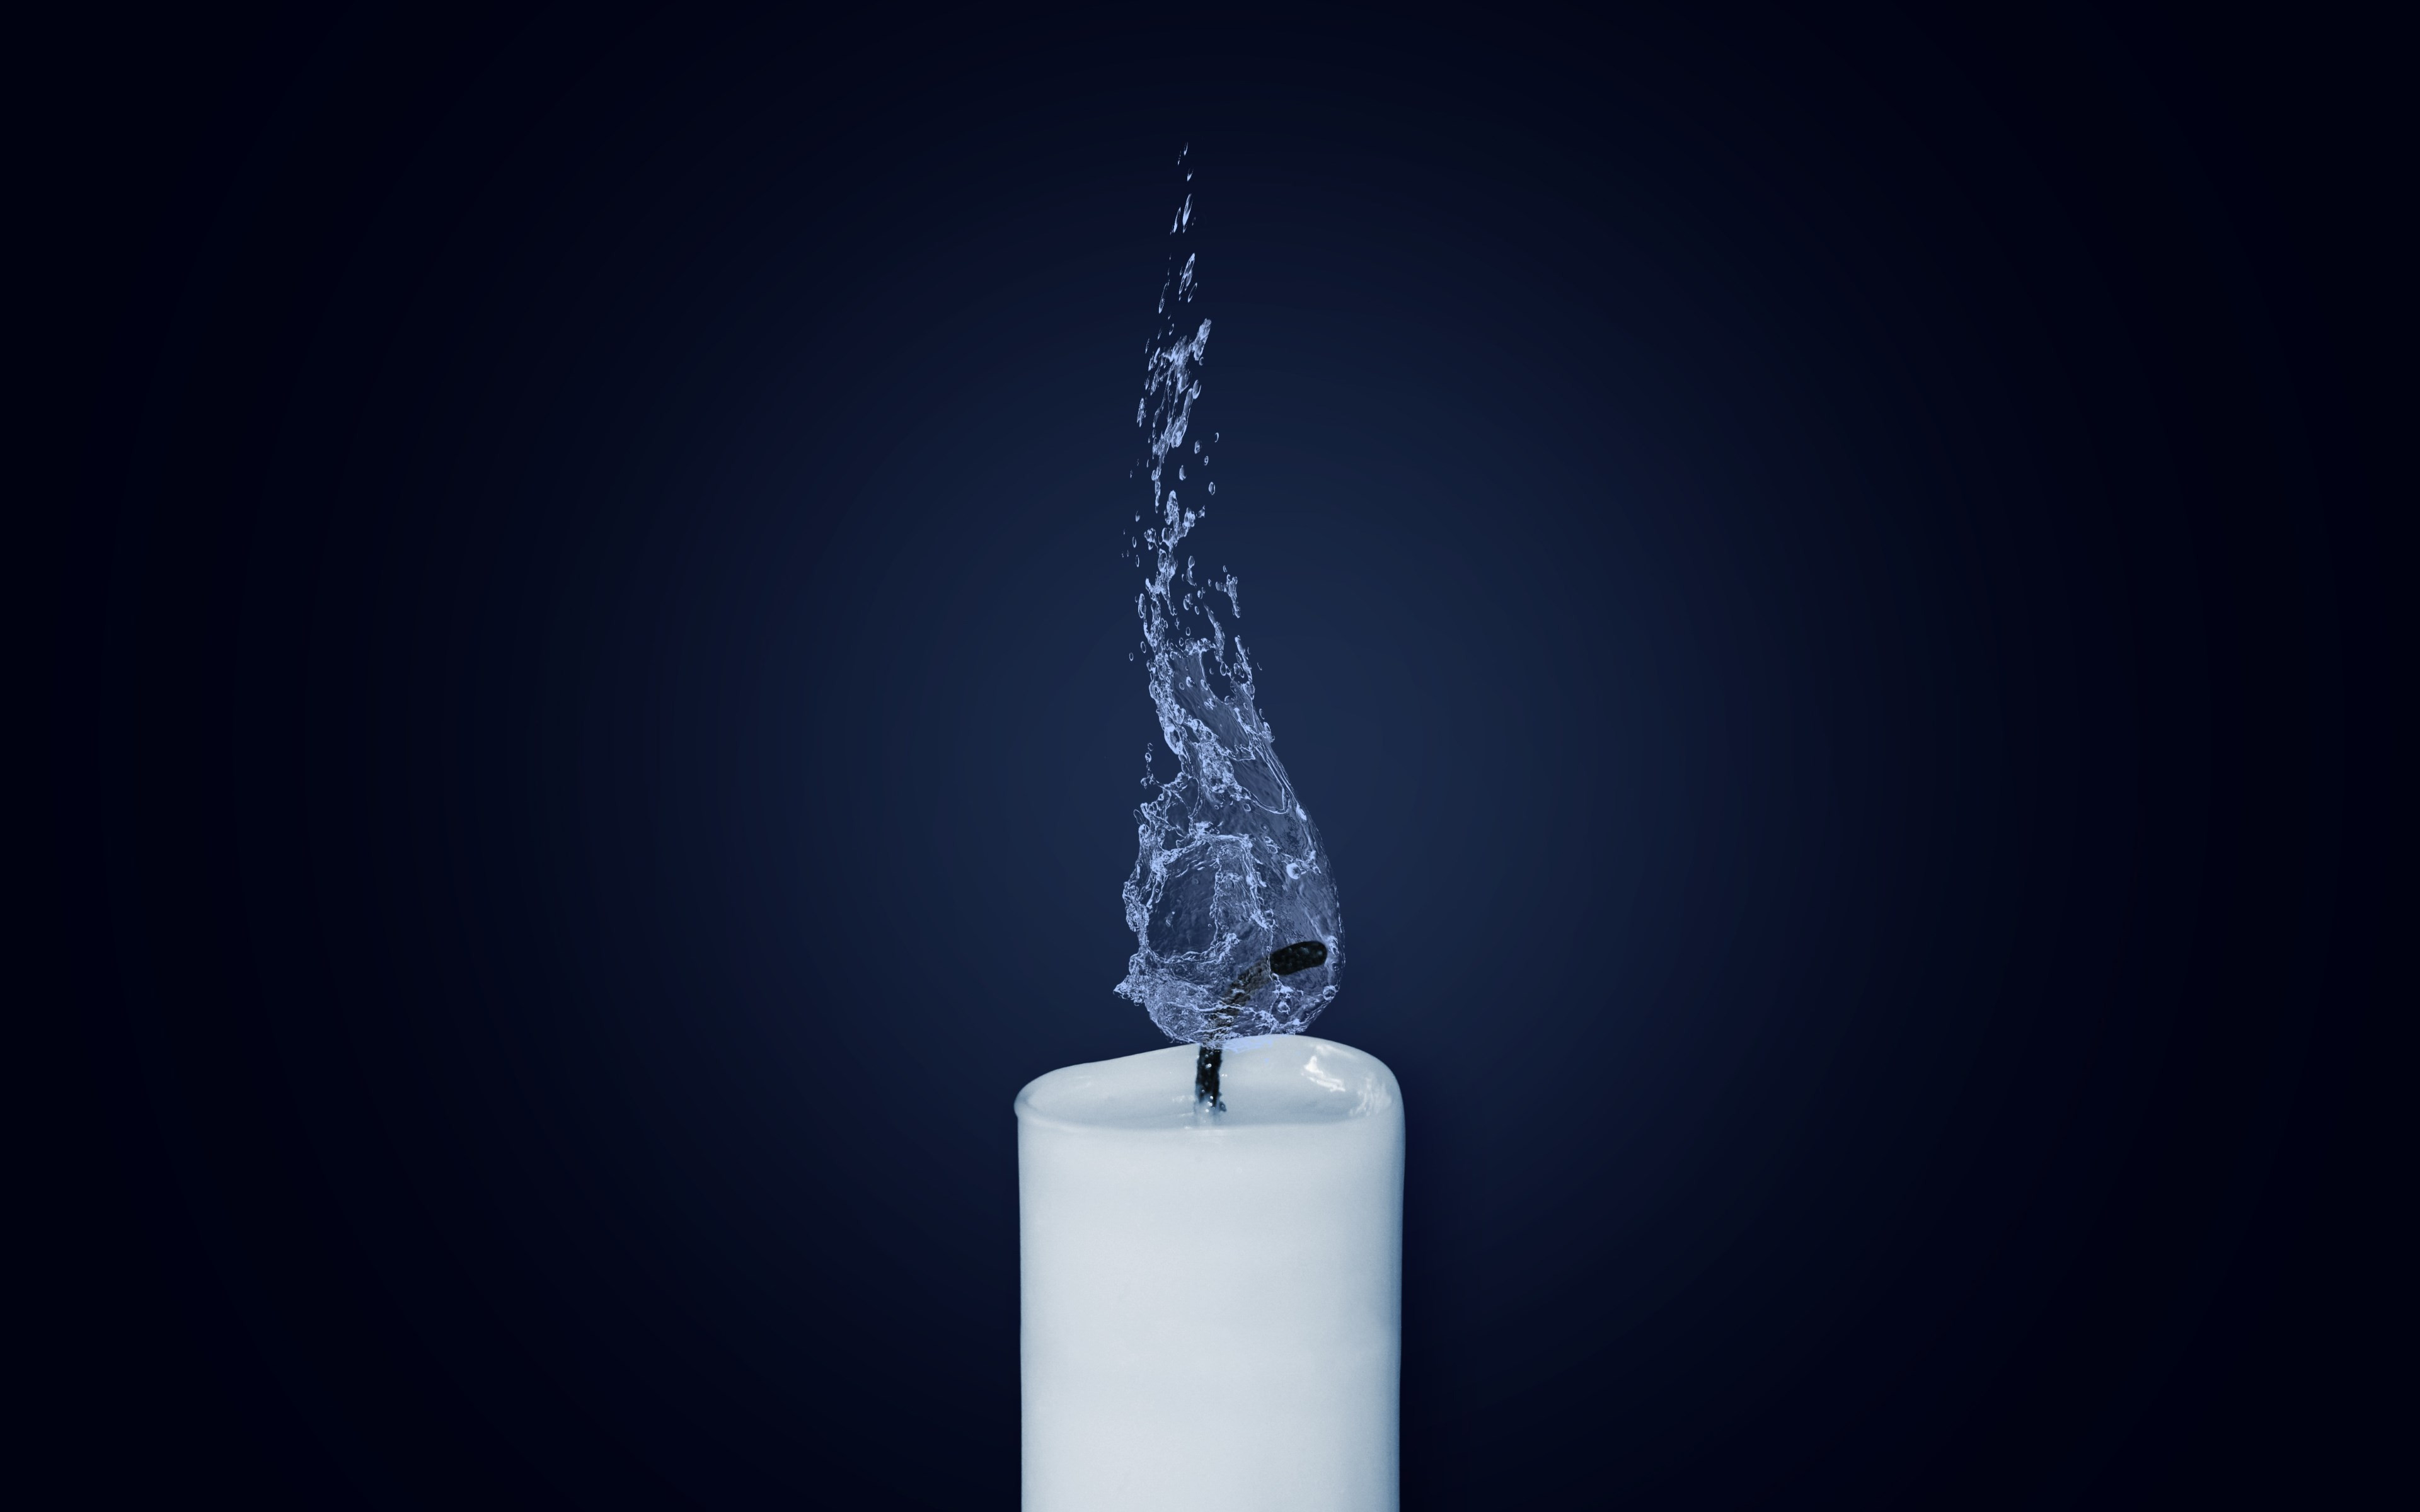 Water Flame. Candlelight wallpaper 3840x2400